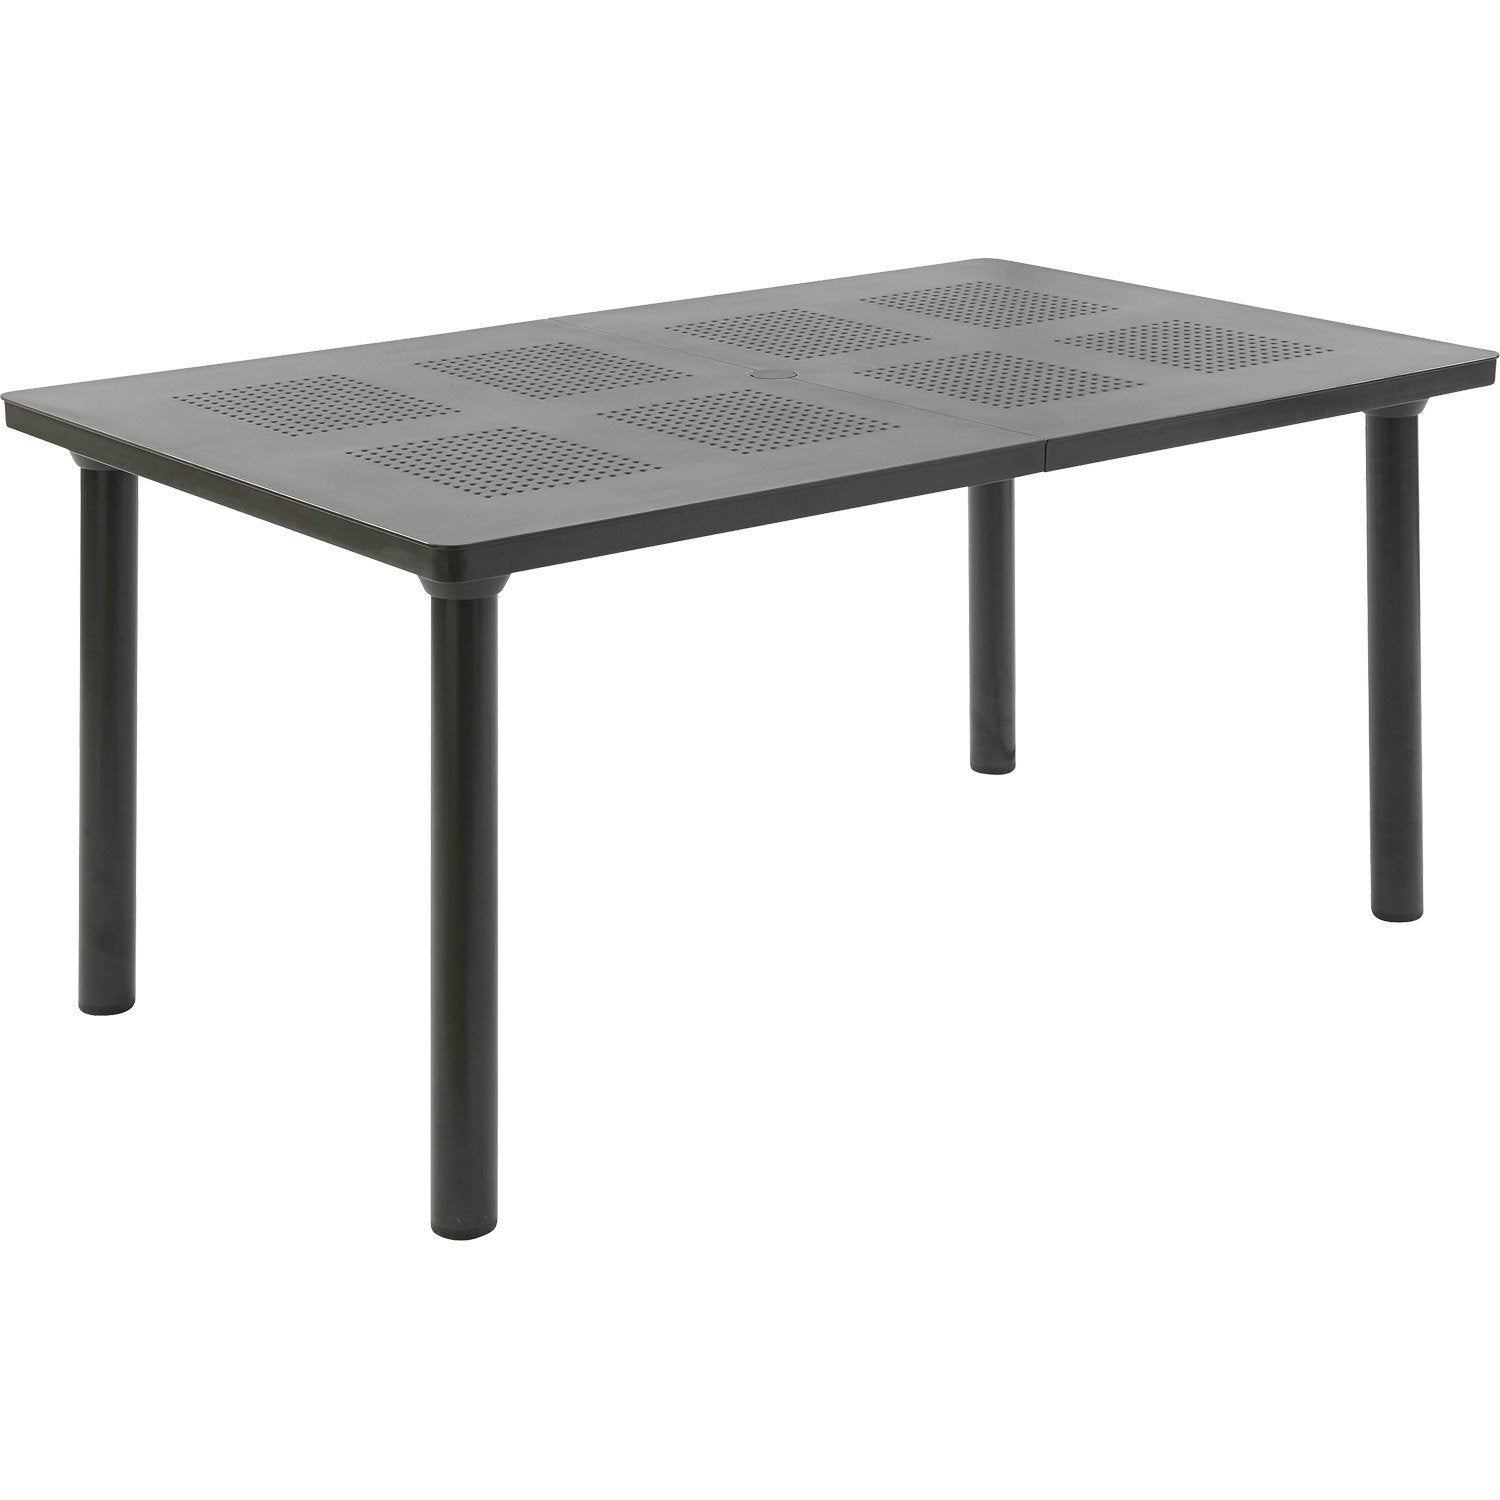 table de jardin en r sine libeccio gris antracithe nardi. Black Bedroom Furniture Sets. Home Design Ideas